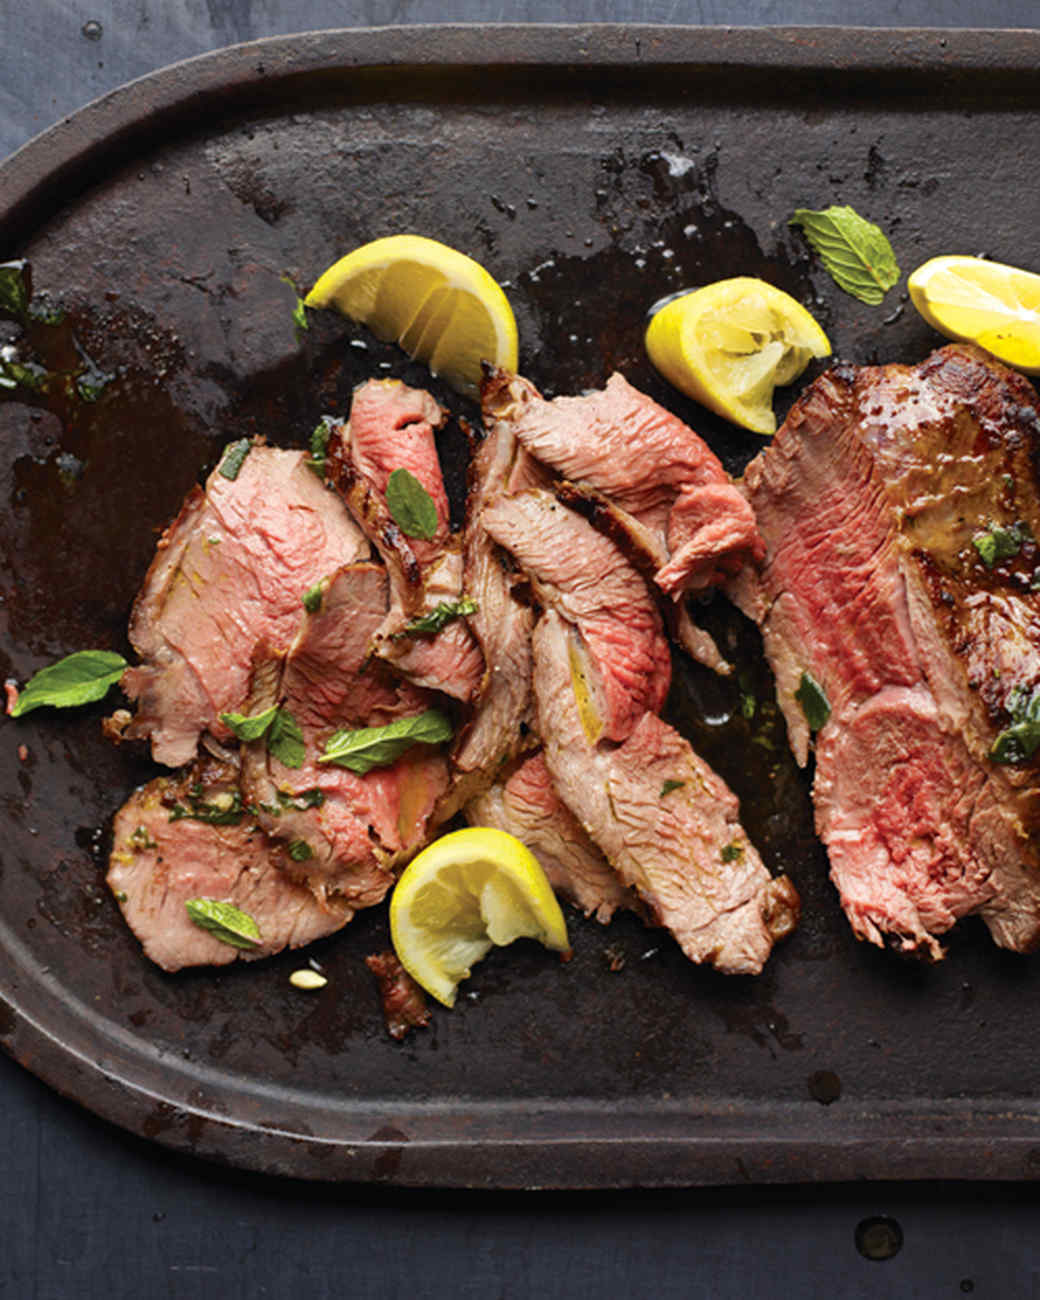 Grilled Leg of Lamb with Garlic and Mint